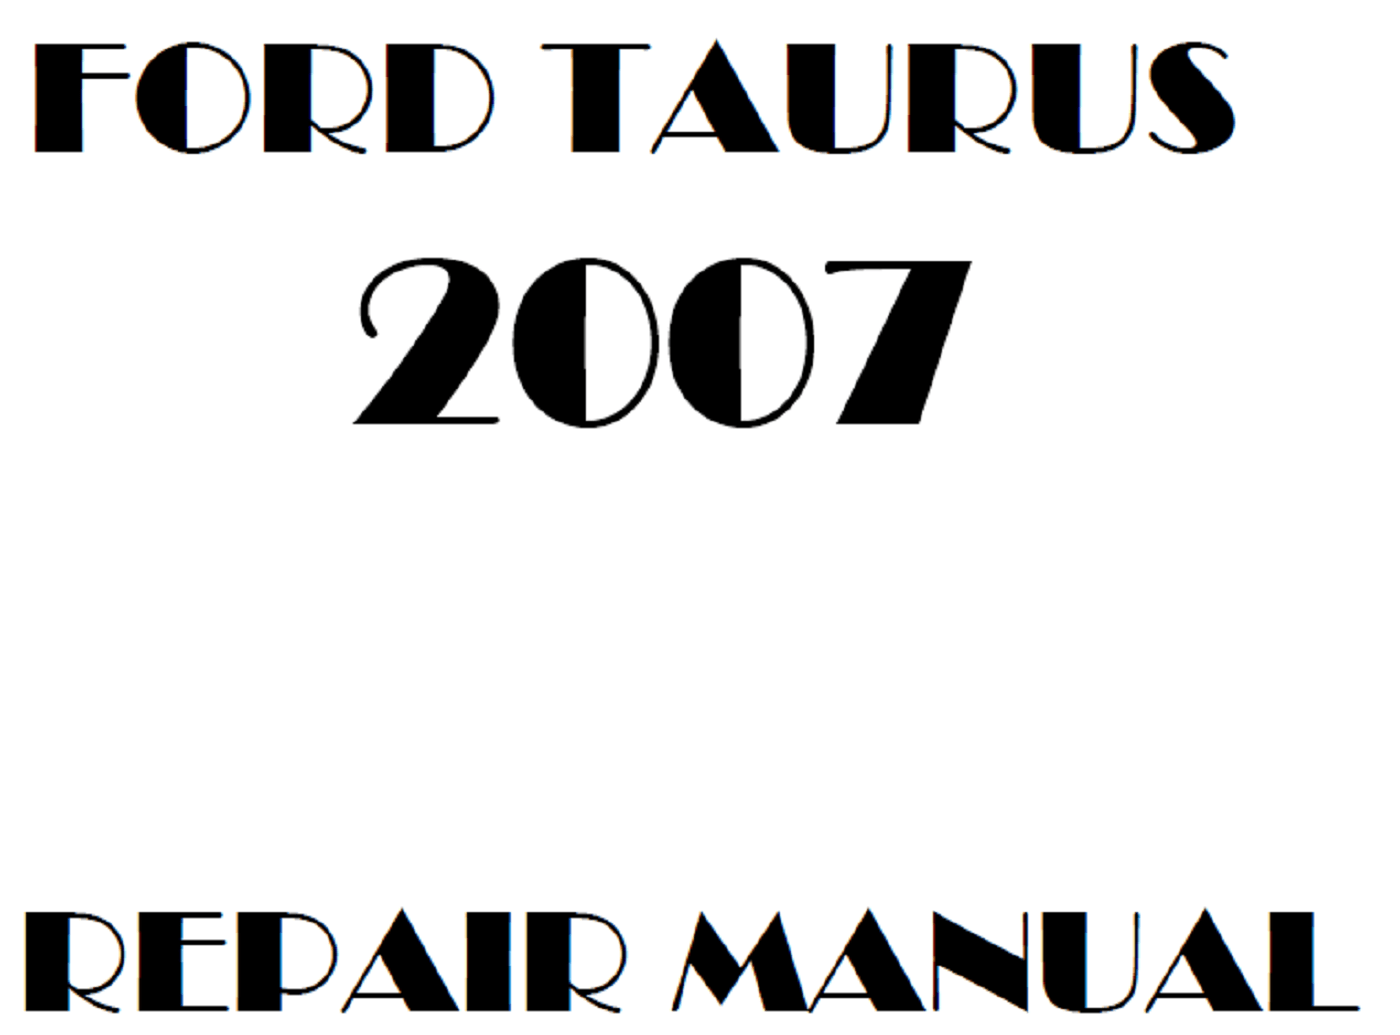 2007 Ford Taurus repair manual